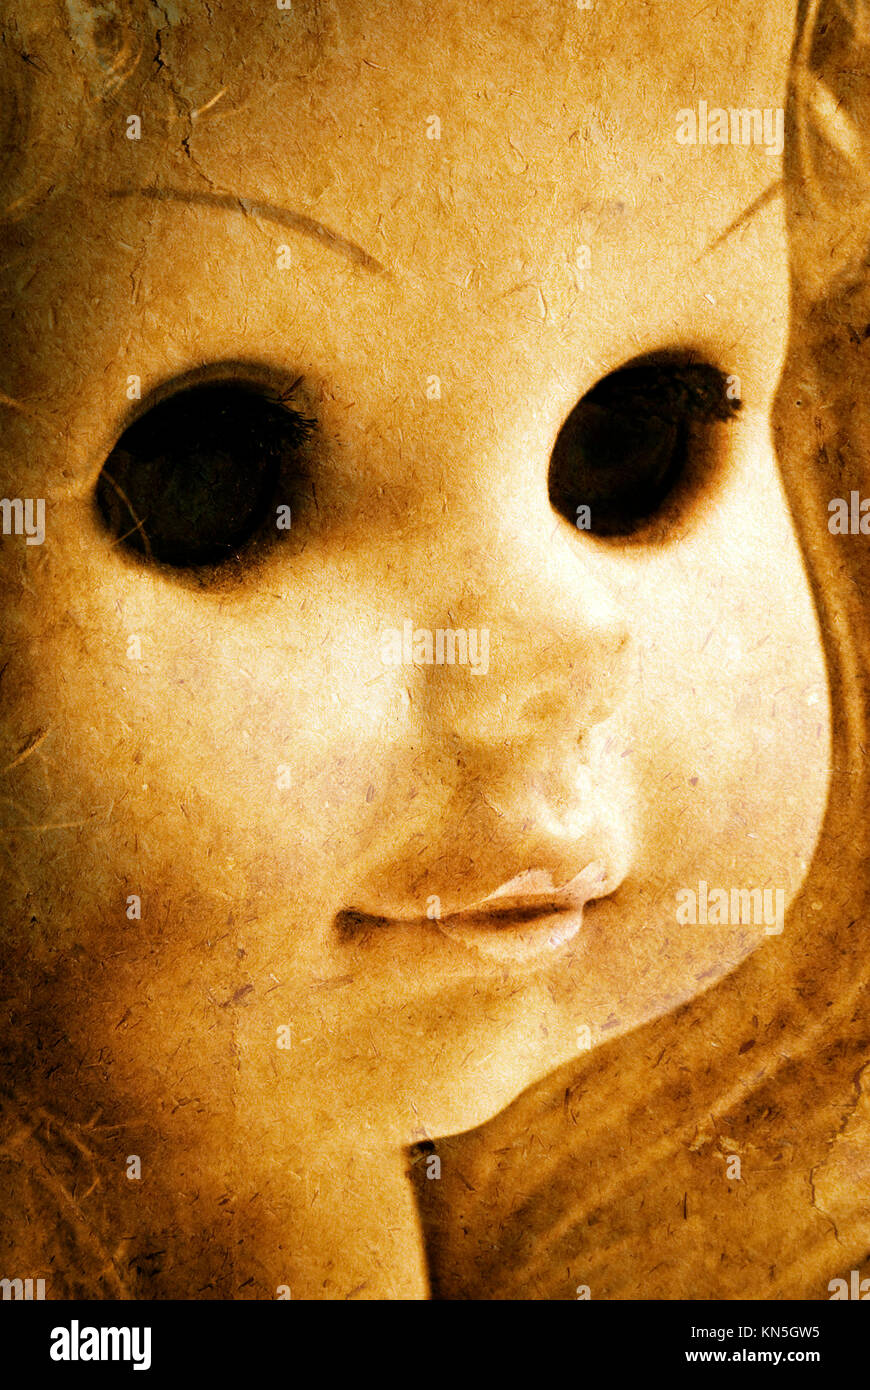 close up of a grunge horror doll - Stock Image